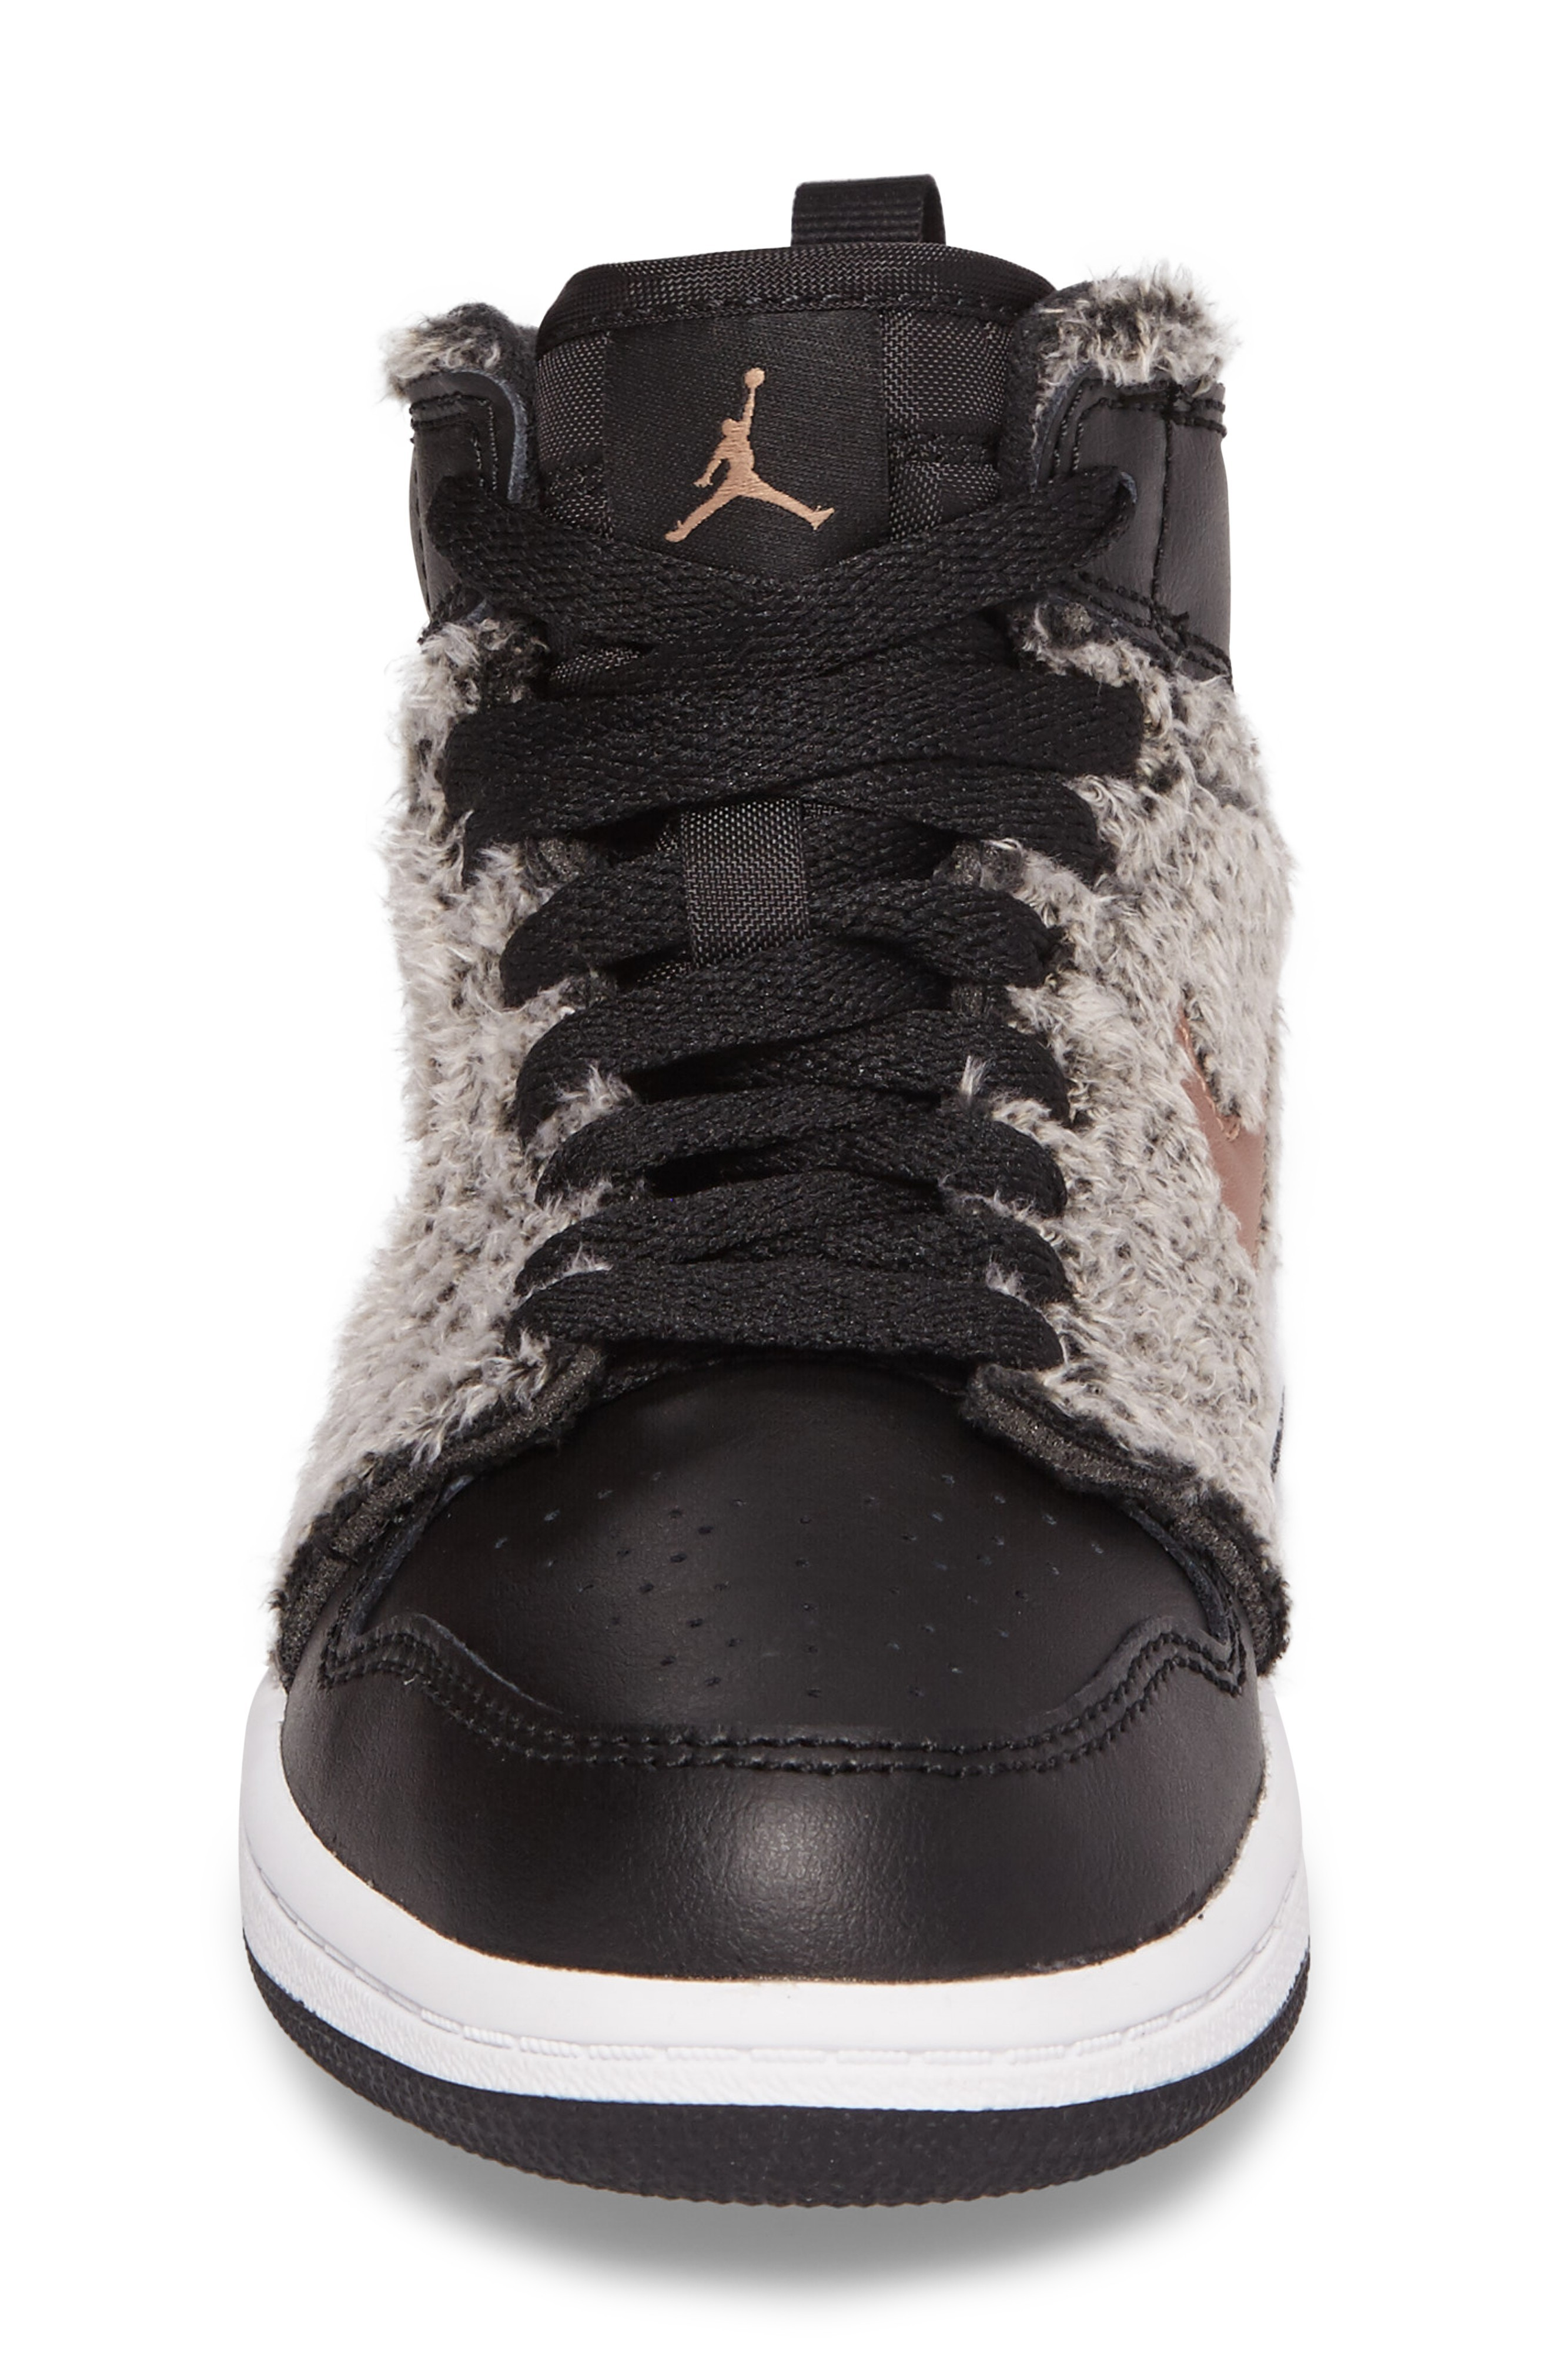 ナイキ Air Jordan 1 Retro Faux Fur High Top S キッズシューズ